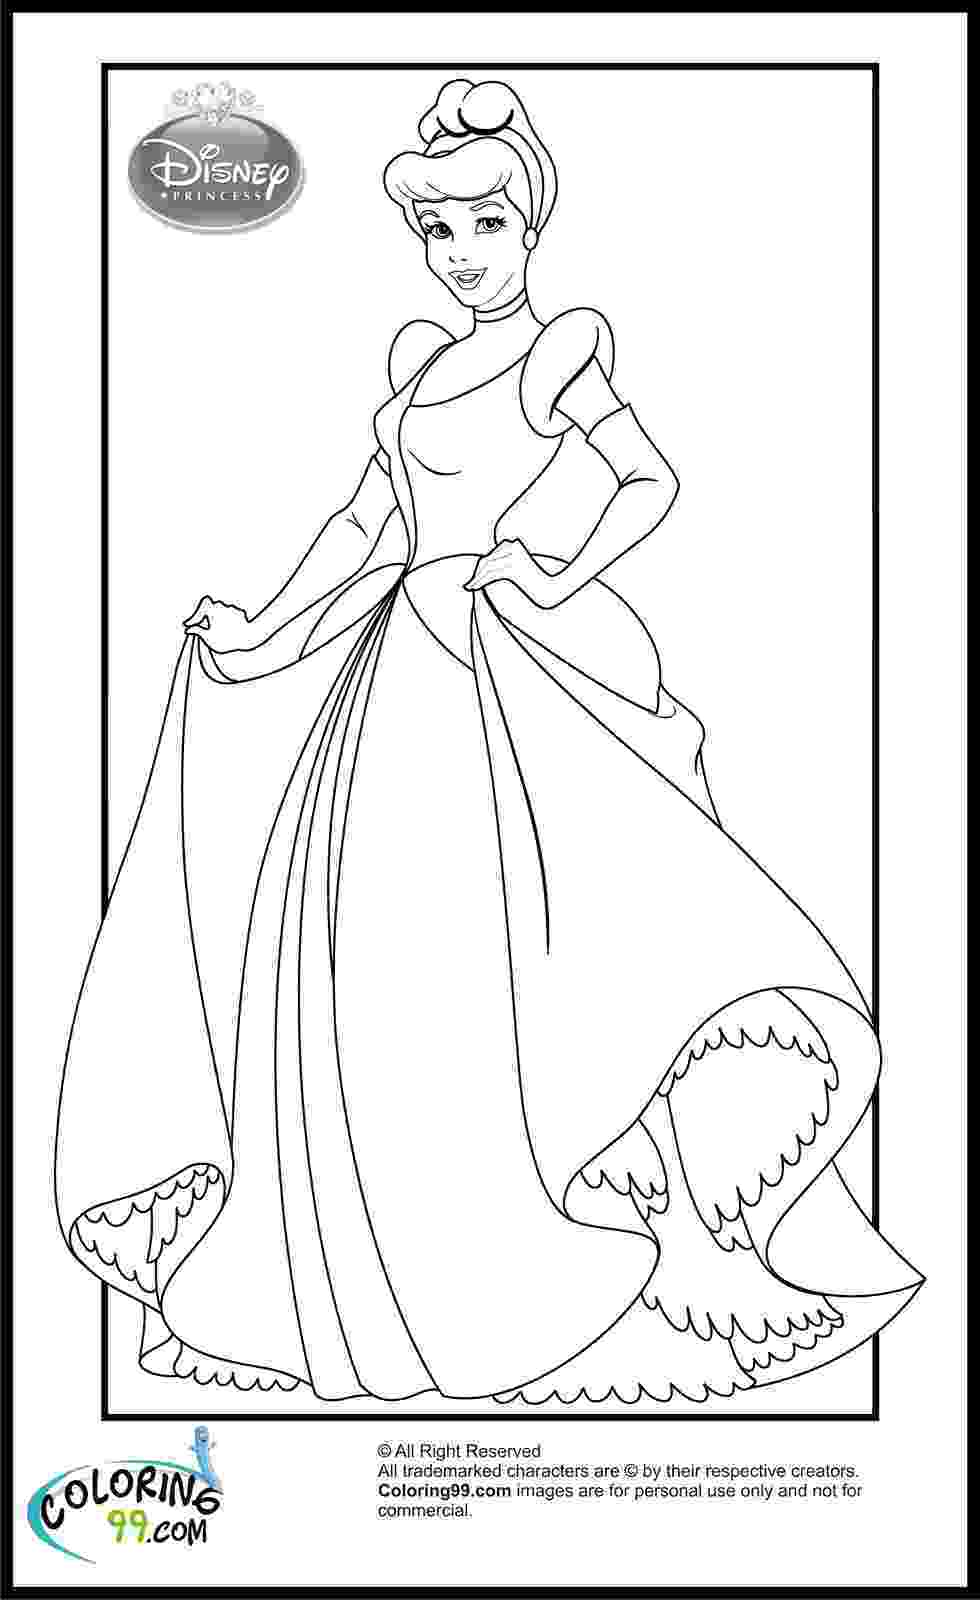 cinderella colouring pages free disney princess cinderella coloring pages minister coloring cinderella pages free colouring